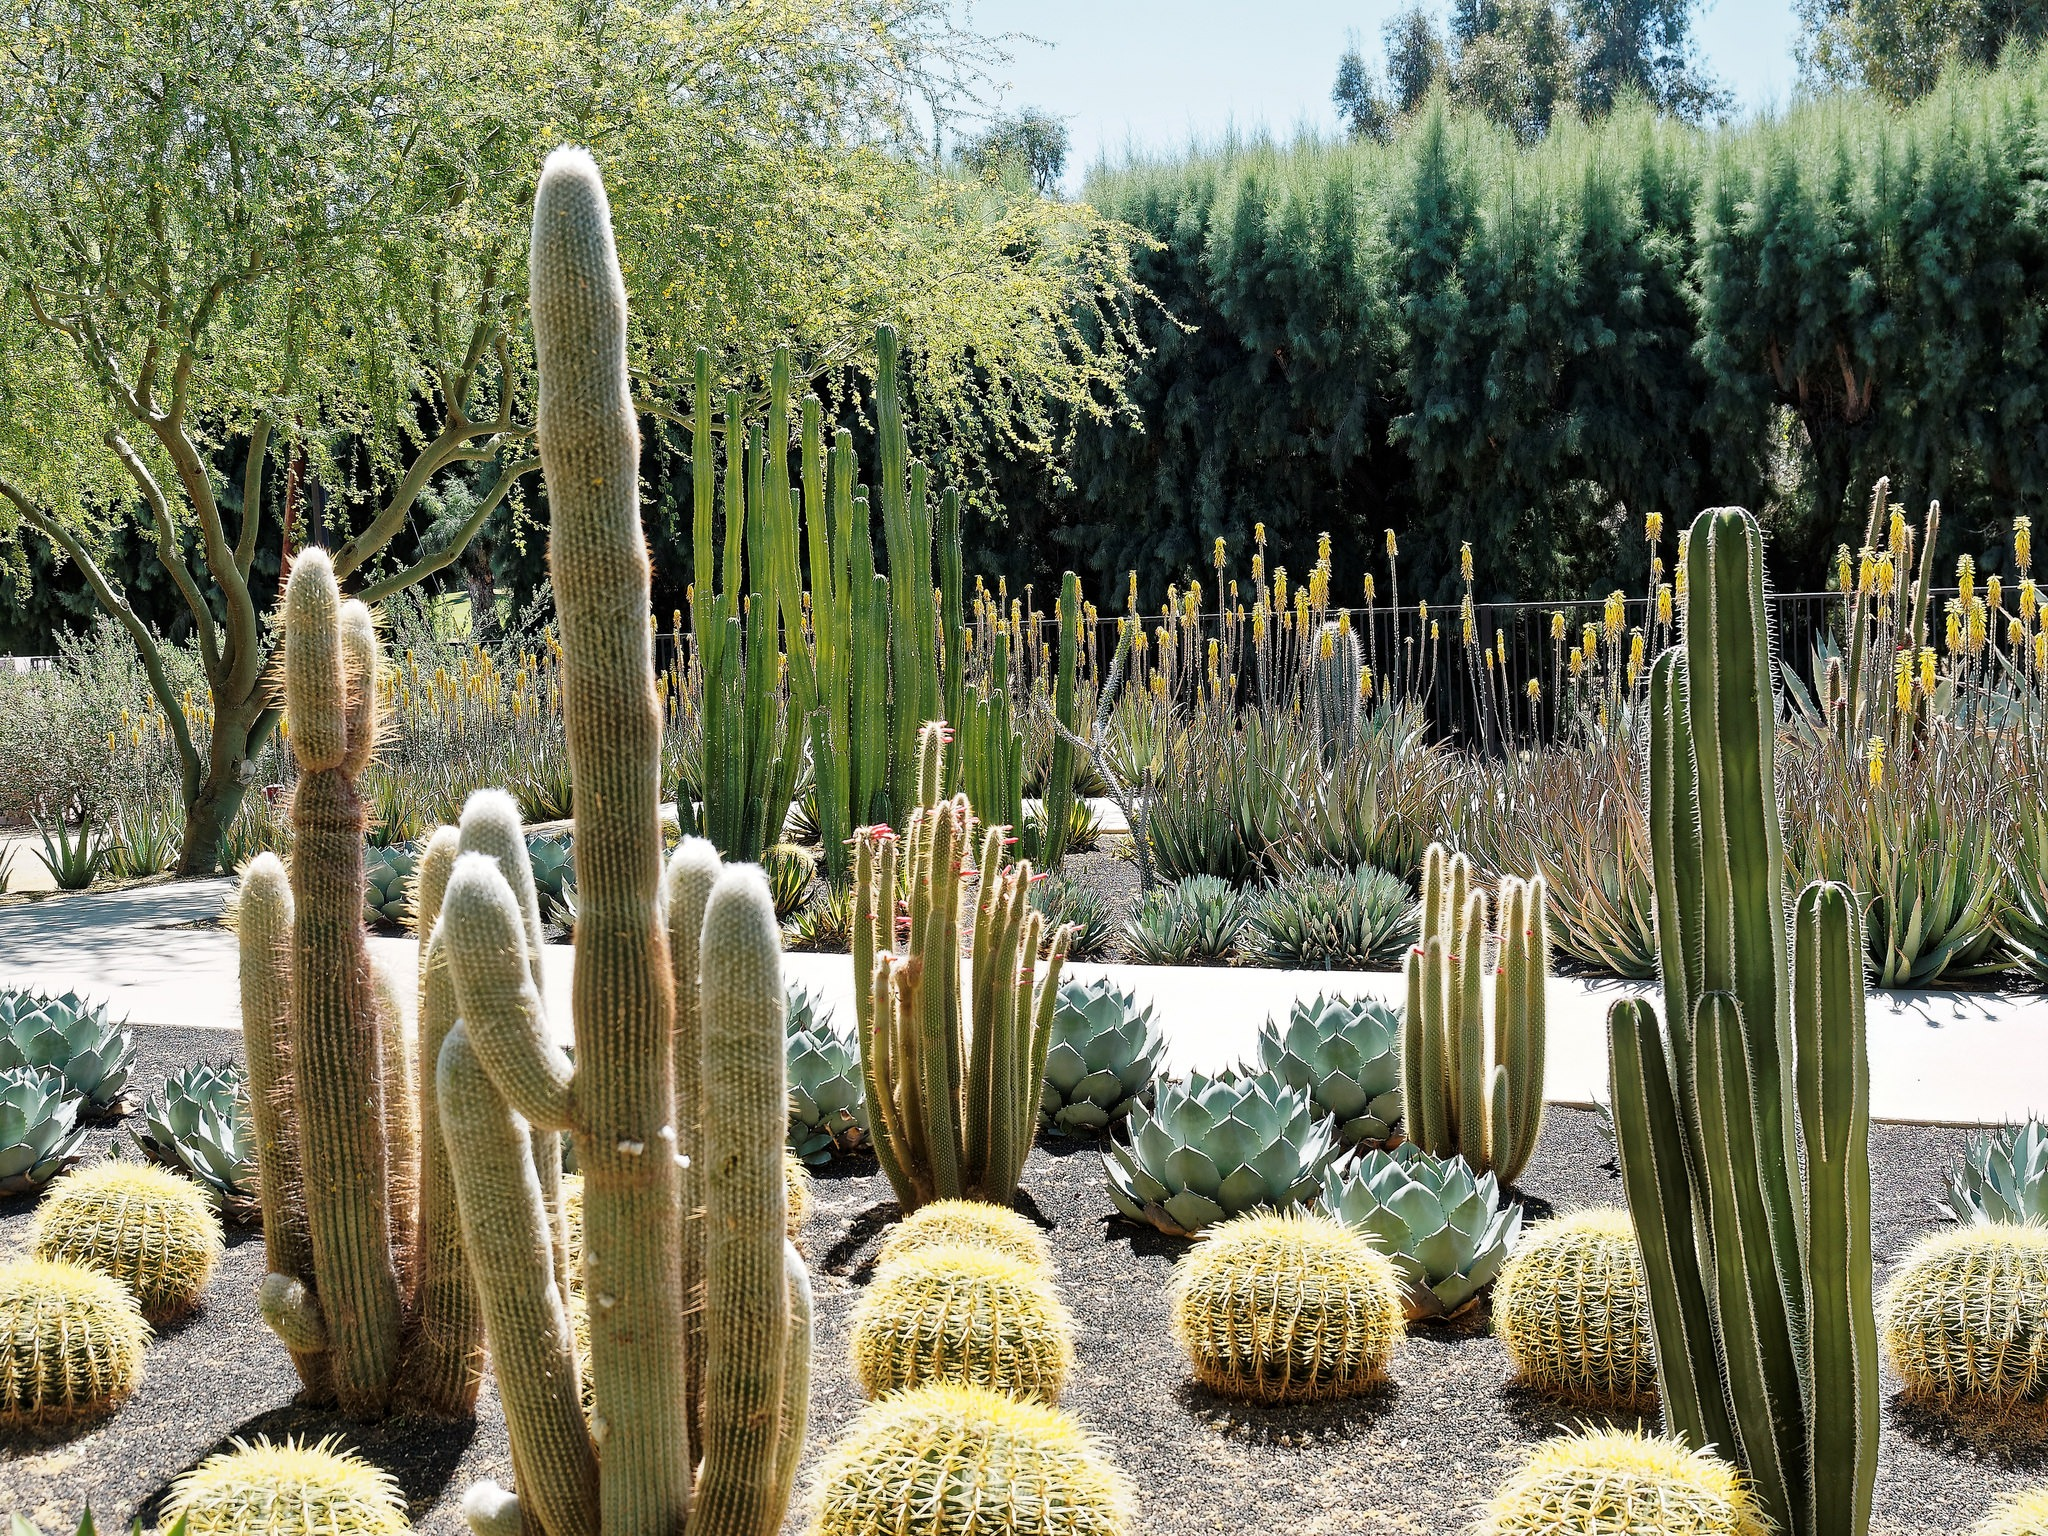 Cacti 101: How to grow a cactus garden in Southern California